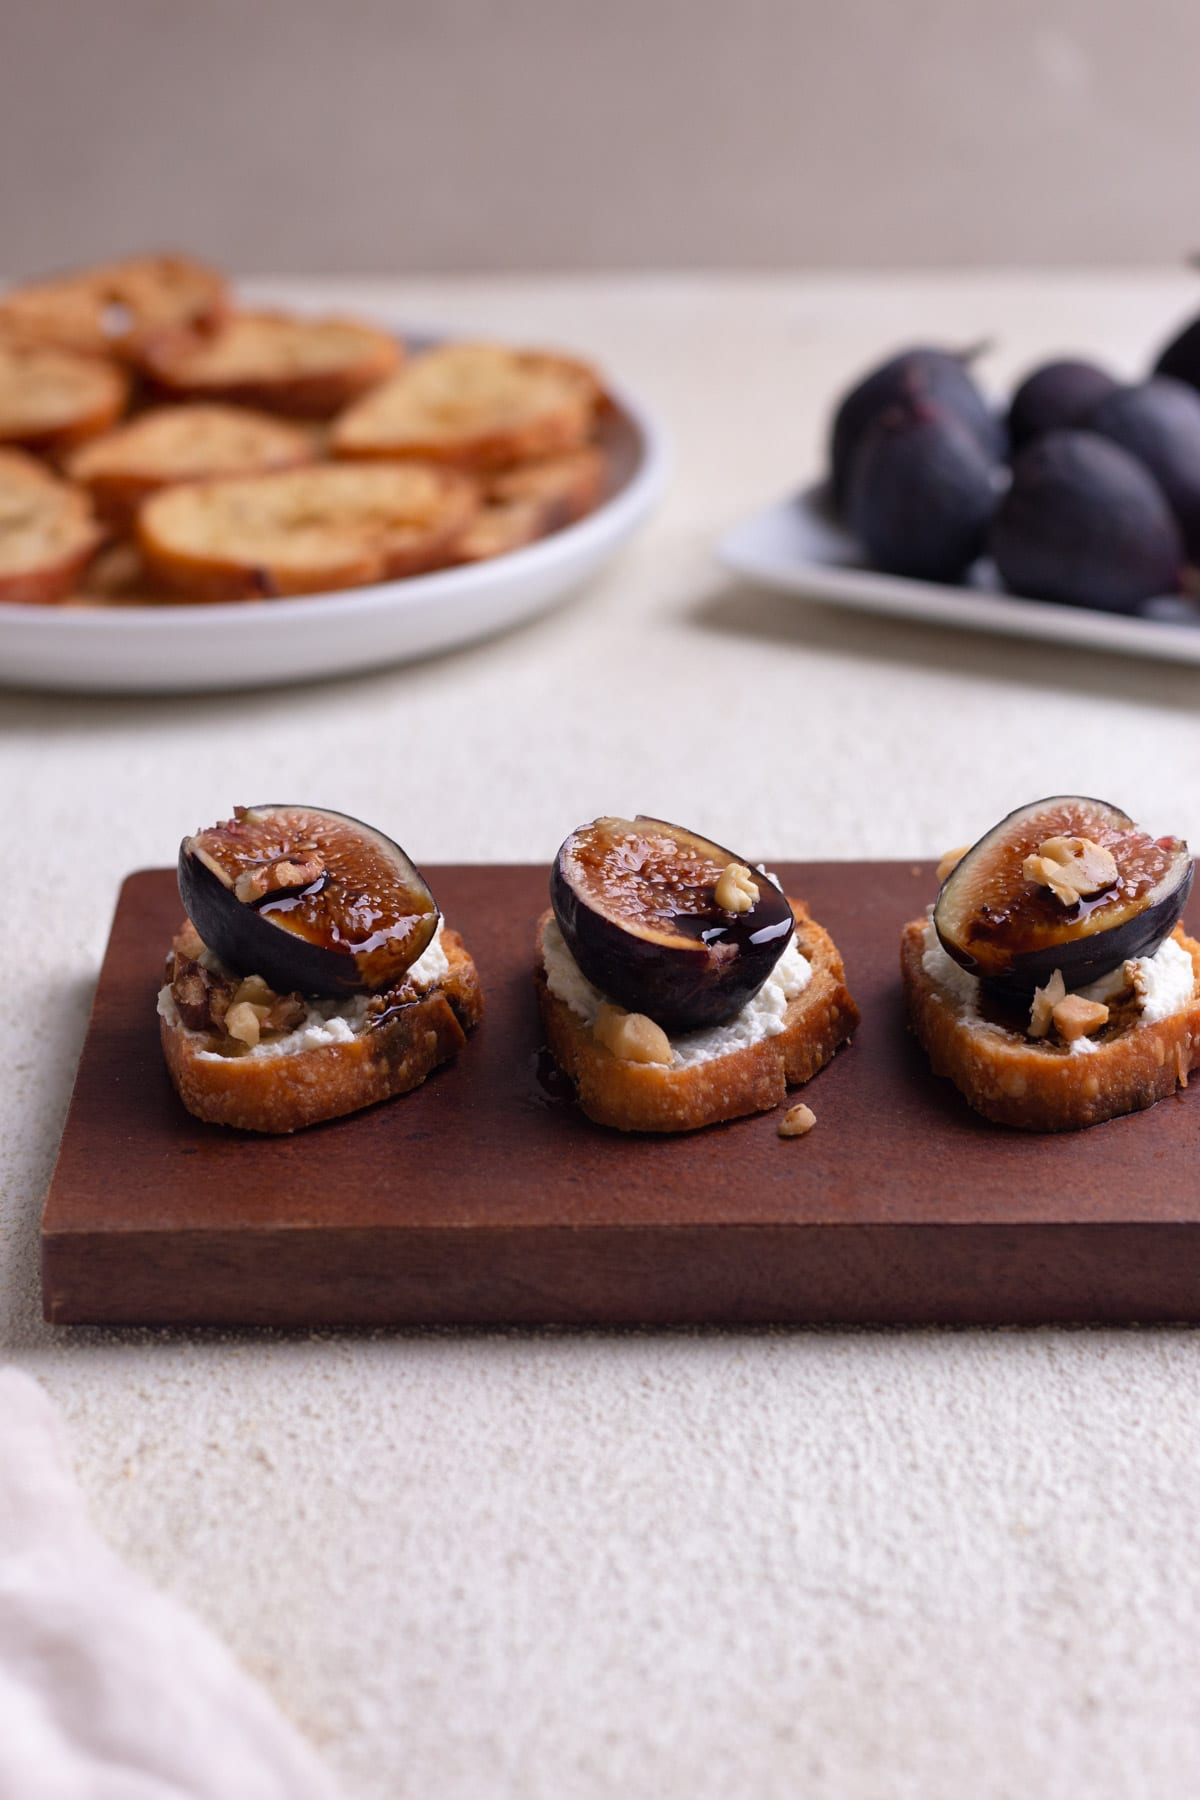 Fig and goat cheese crostini with balsamic on a wood cutting board on a cream, textured surface.